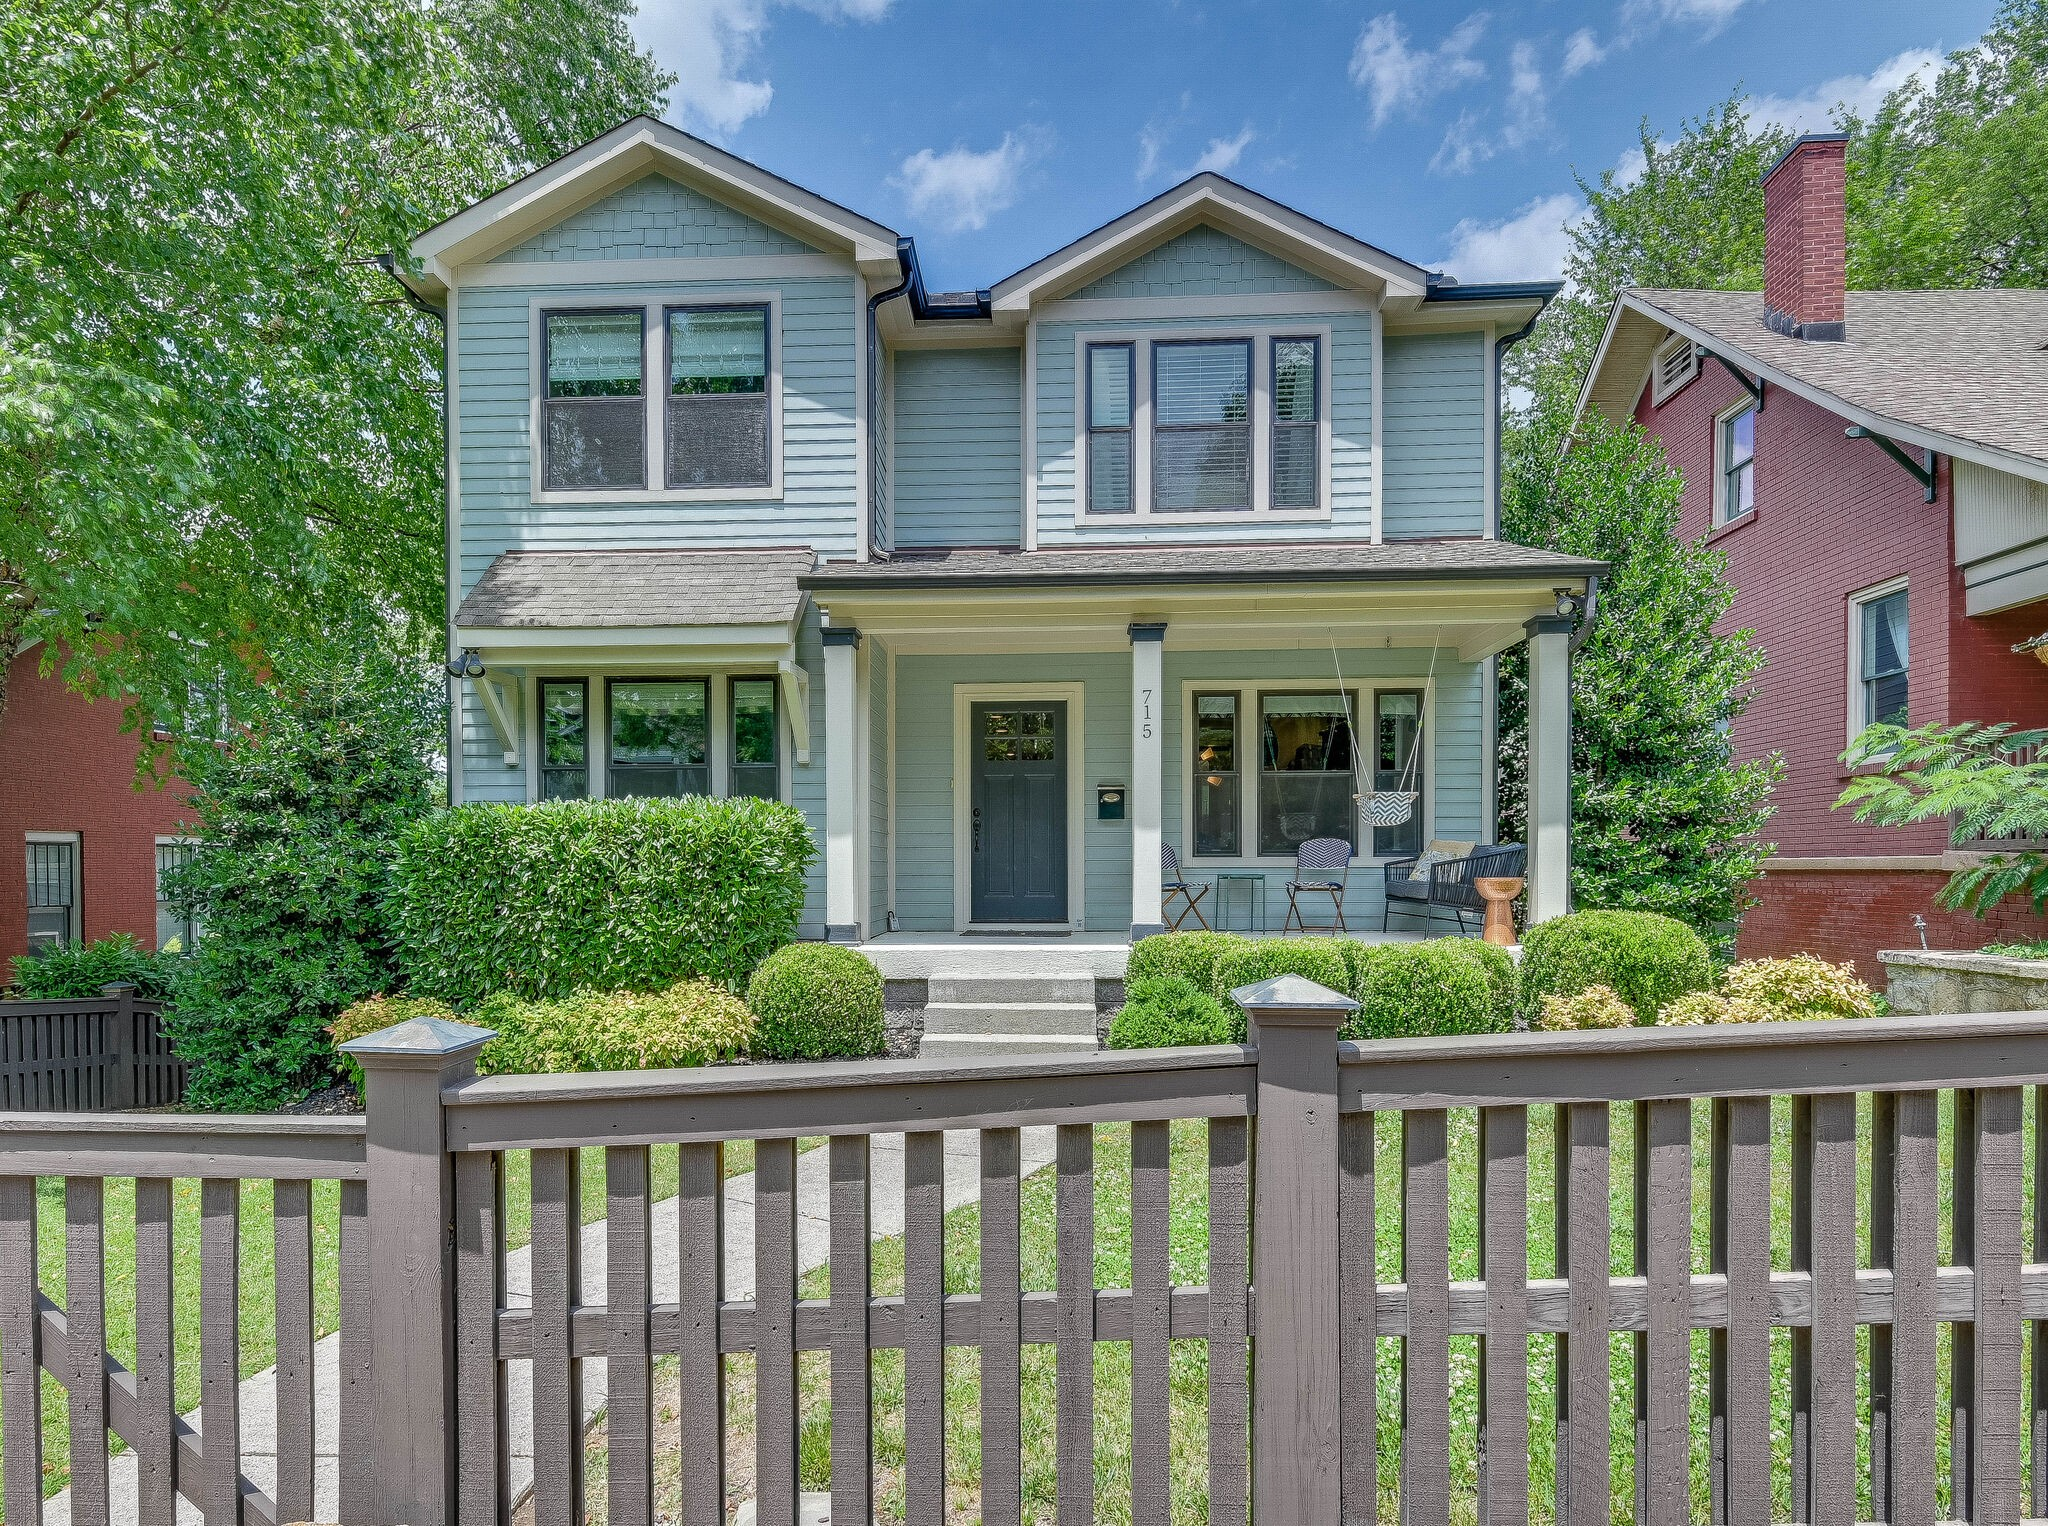 715 Boscobel St Property Photo - Nashville, TN real estate listing